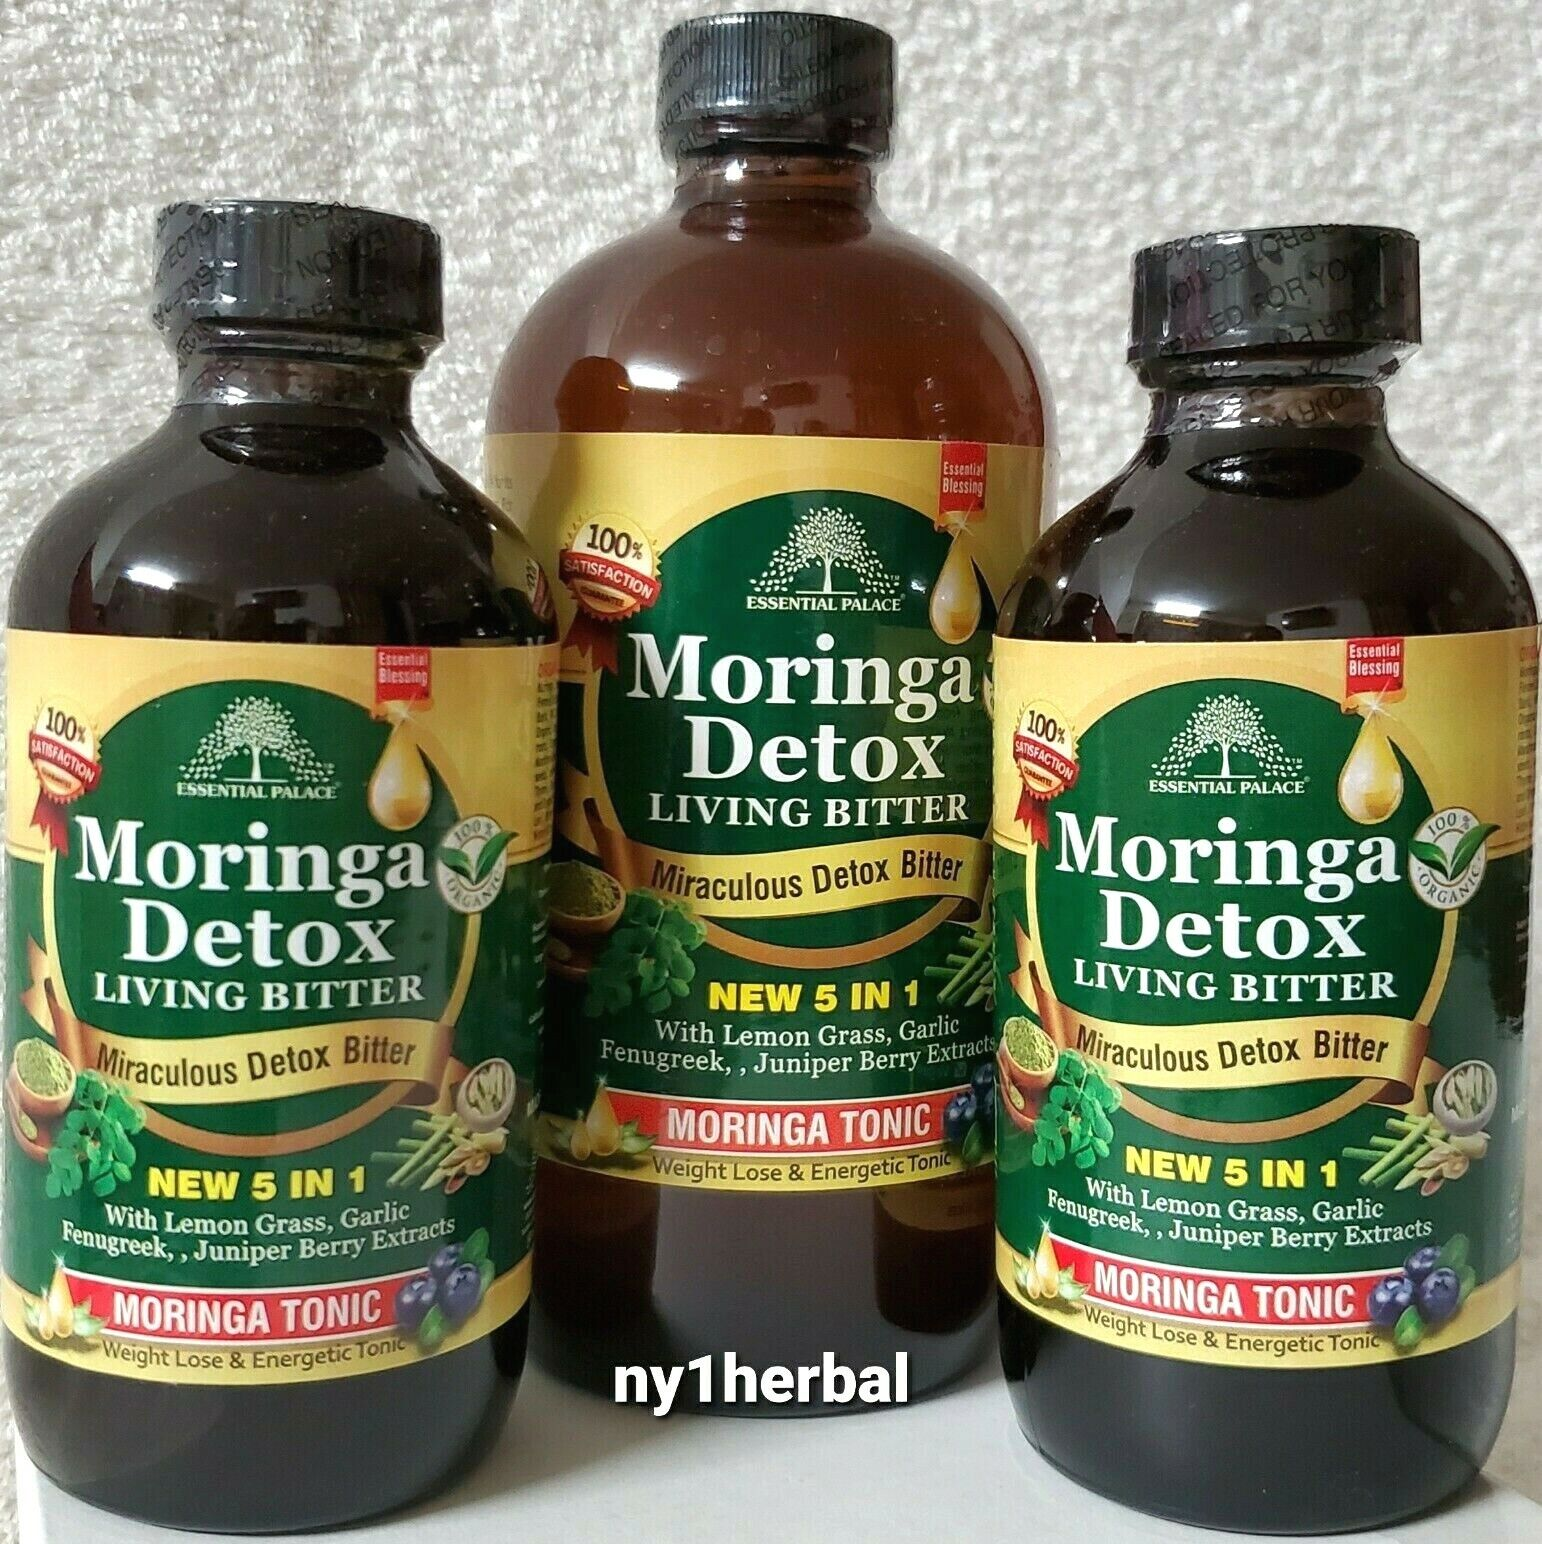 Essential Palace Organic MORINGA DETOX LIVING BITTERS . Made In USA